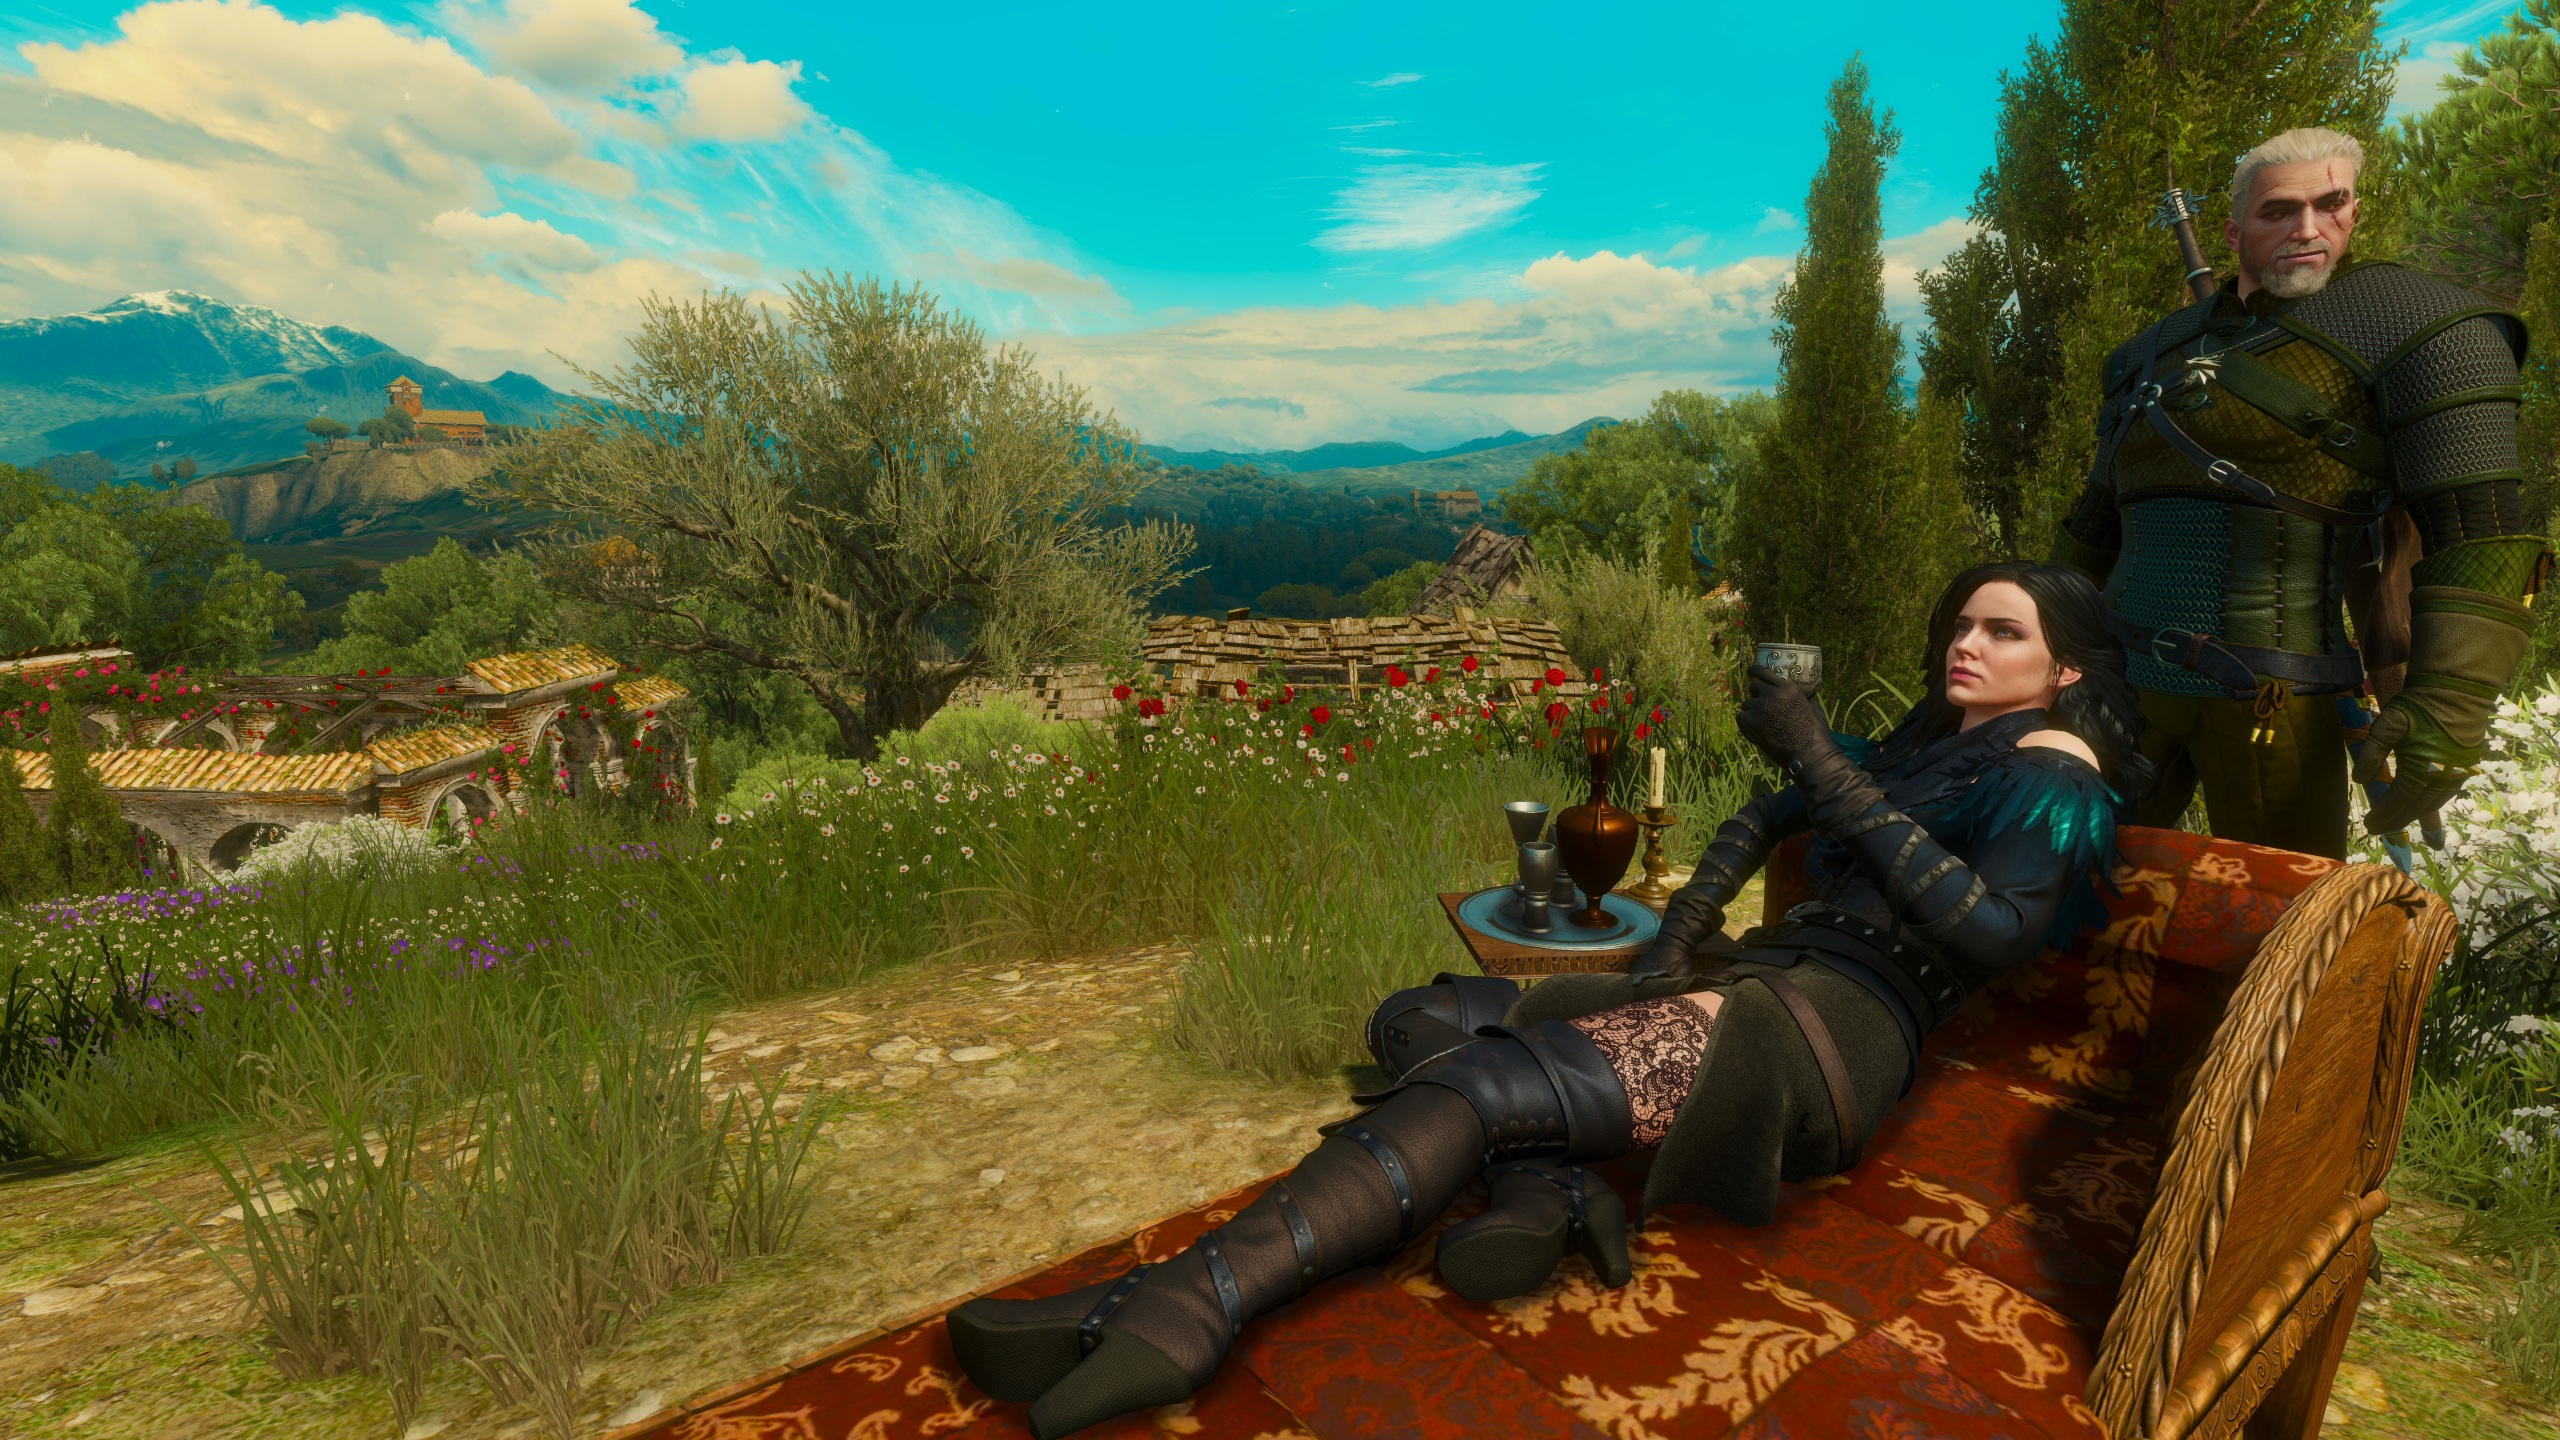 Picture The Witcher 3 Wild Hunt Geralt Of Rivia Yennefer 2560x1440